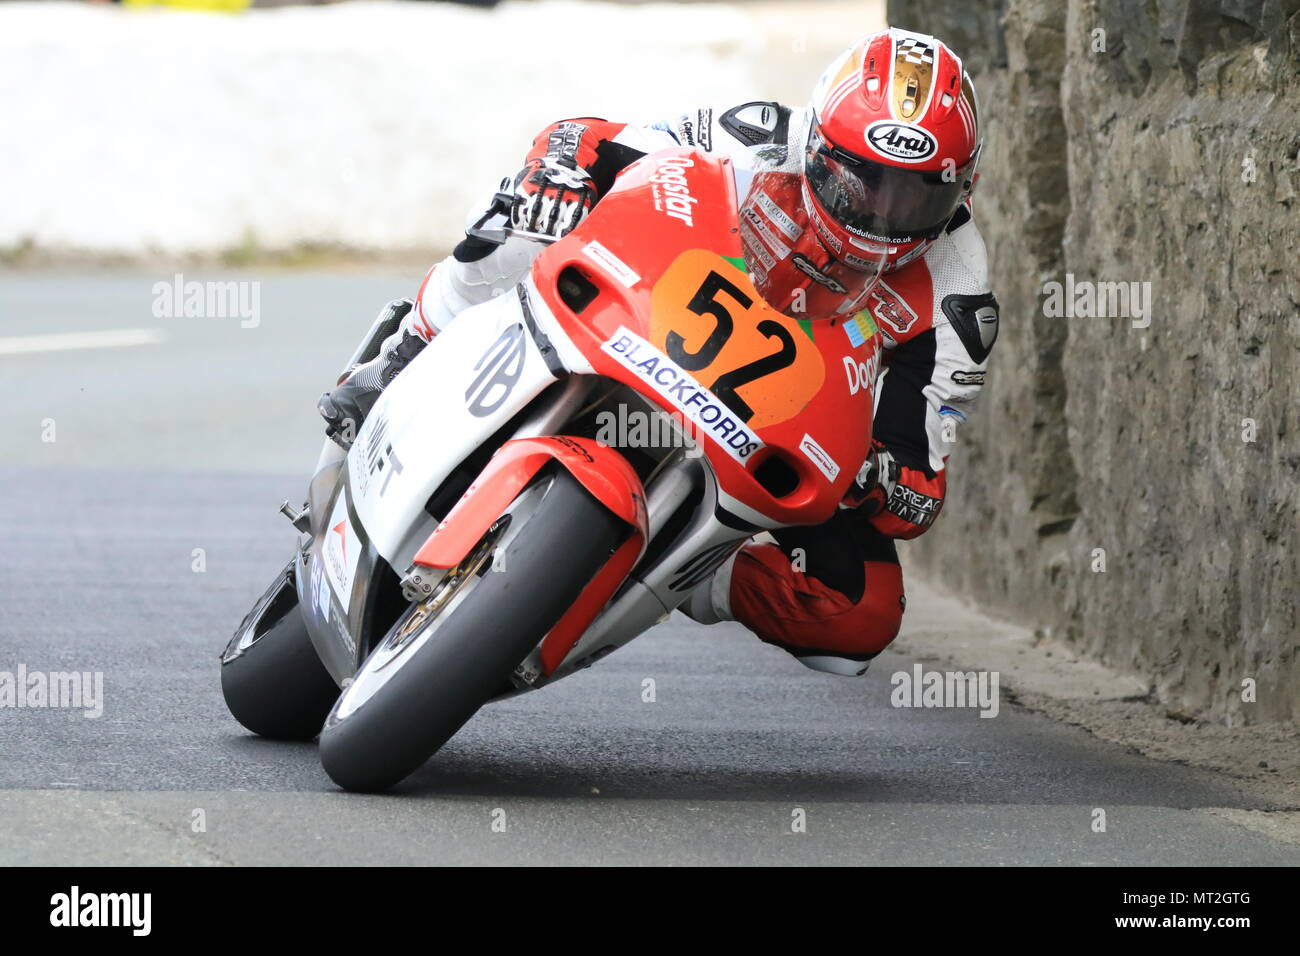 southern 100 pre tt classic james cowton at church bends on his way to winning the Geoff duke junior superbike post classic race on may 27 - Stock Image